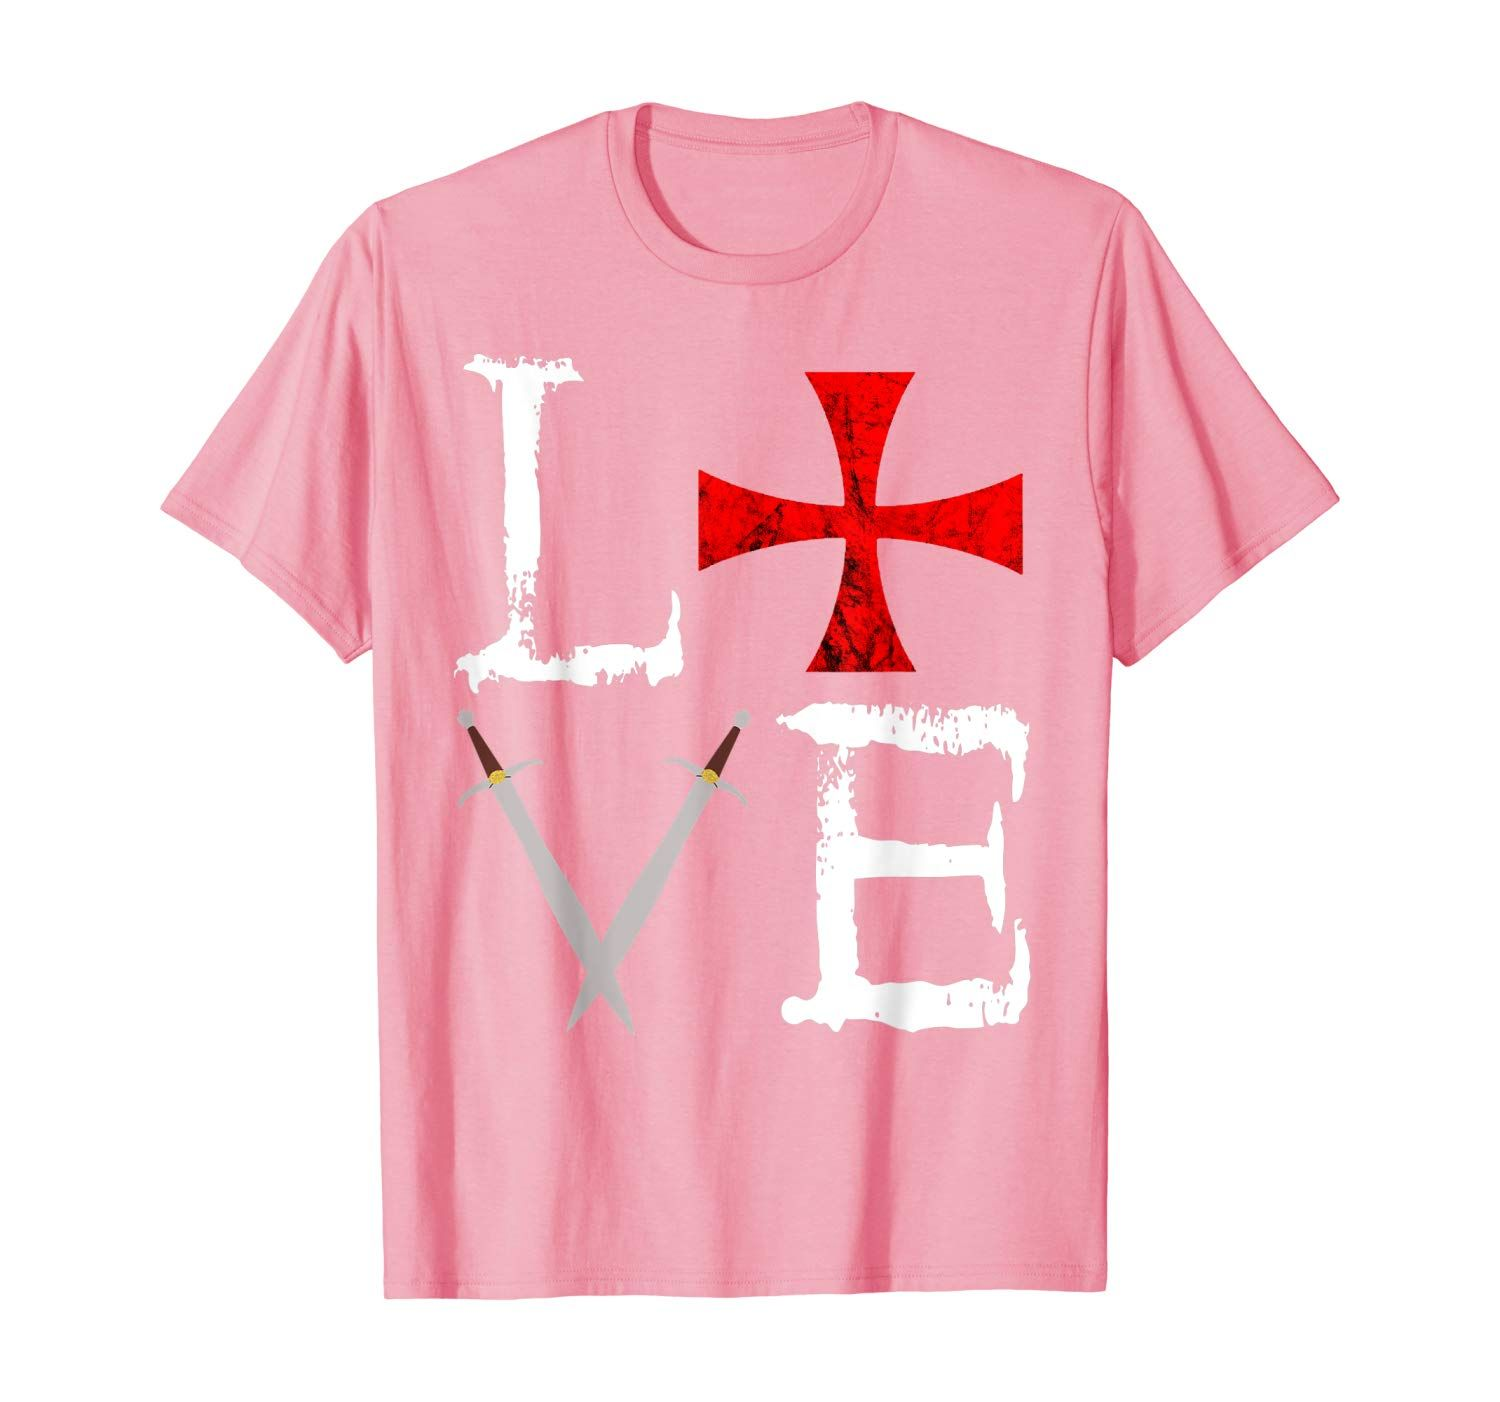 Crusader Love Templar Knights Cross Medieval Warrior Soldier T-Shirt